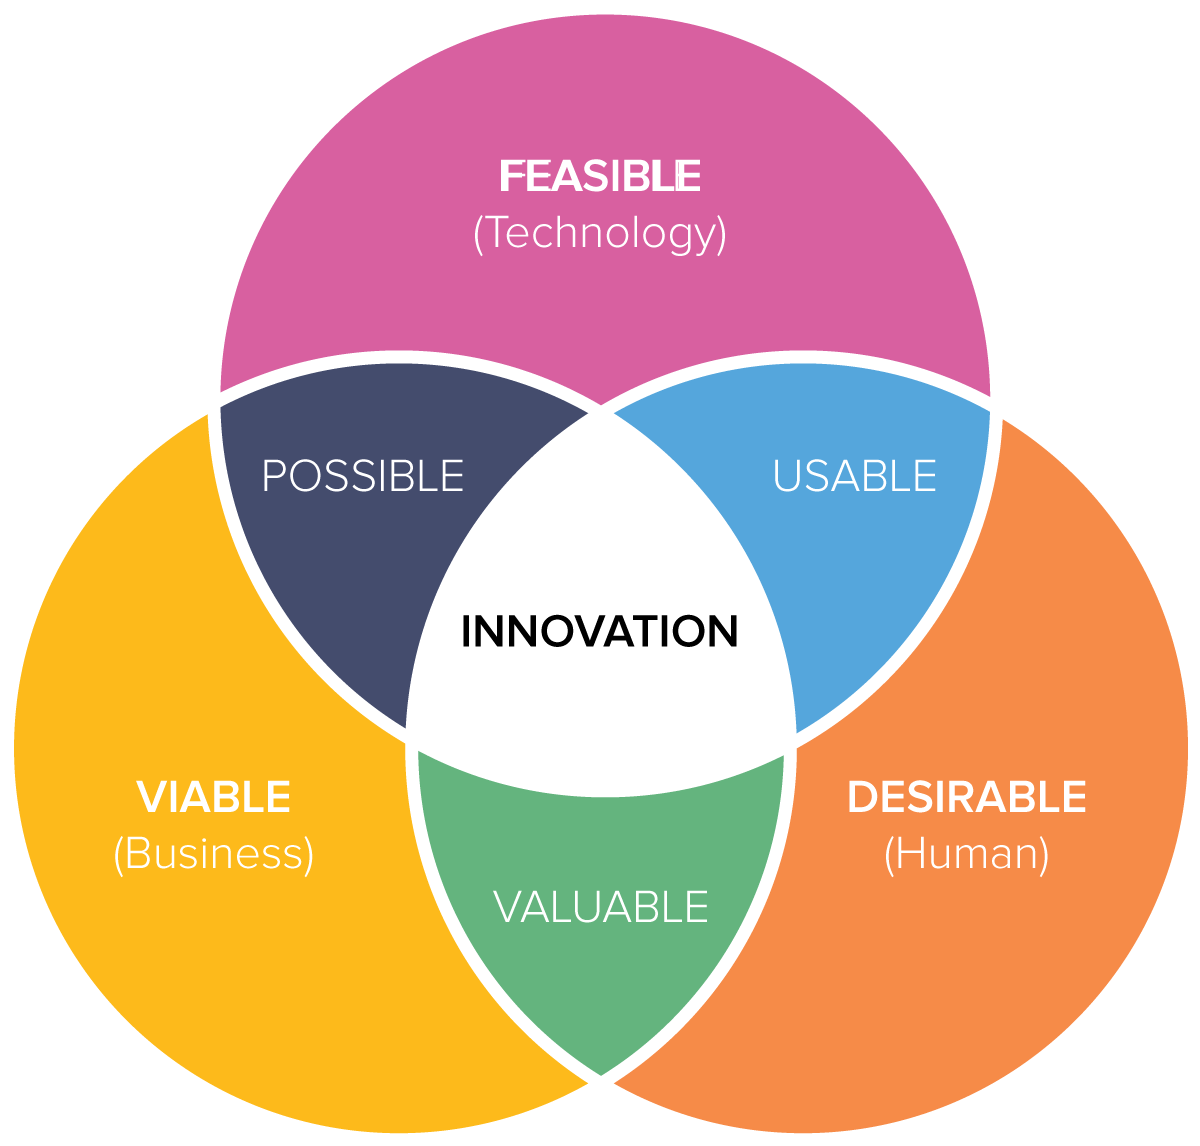 The Venn diagram suggests that three elements must come together to create successful innovation design.